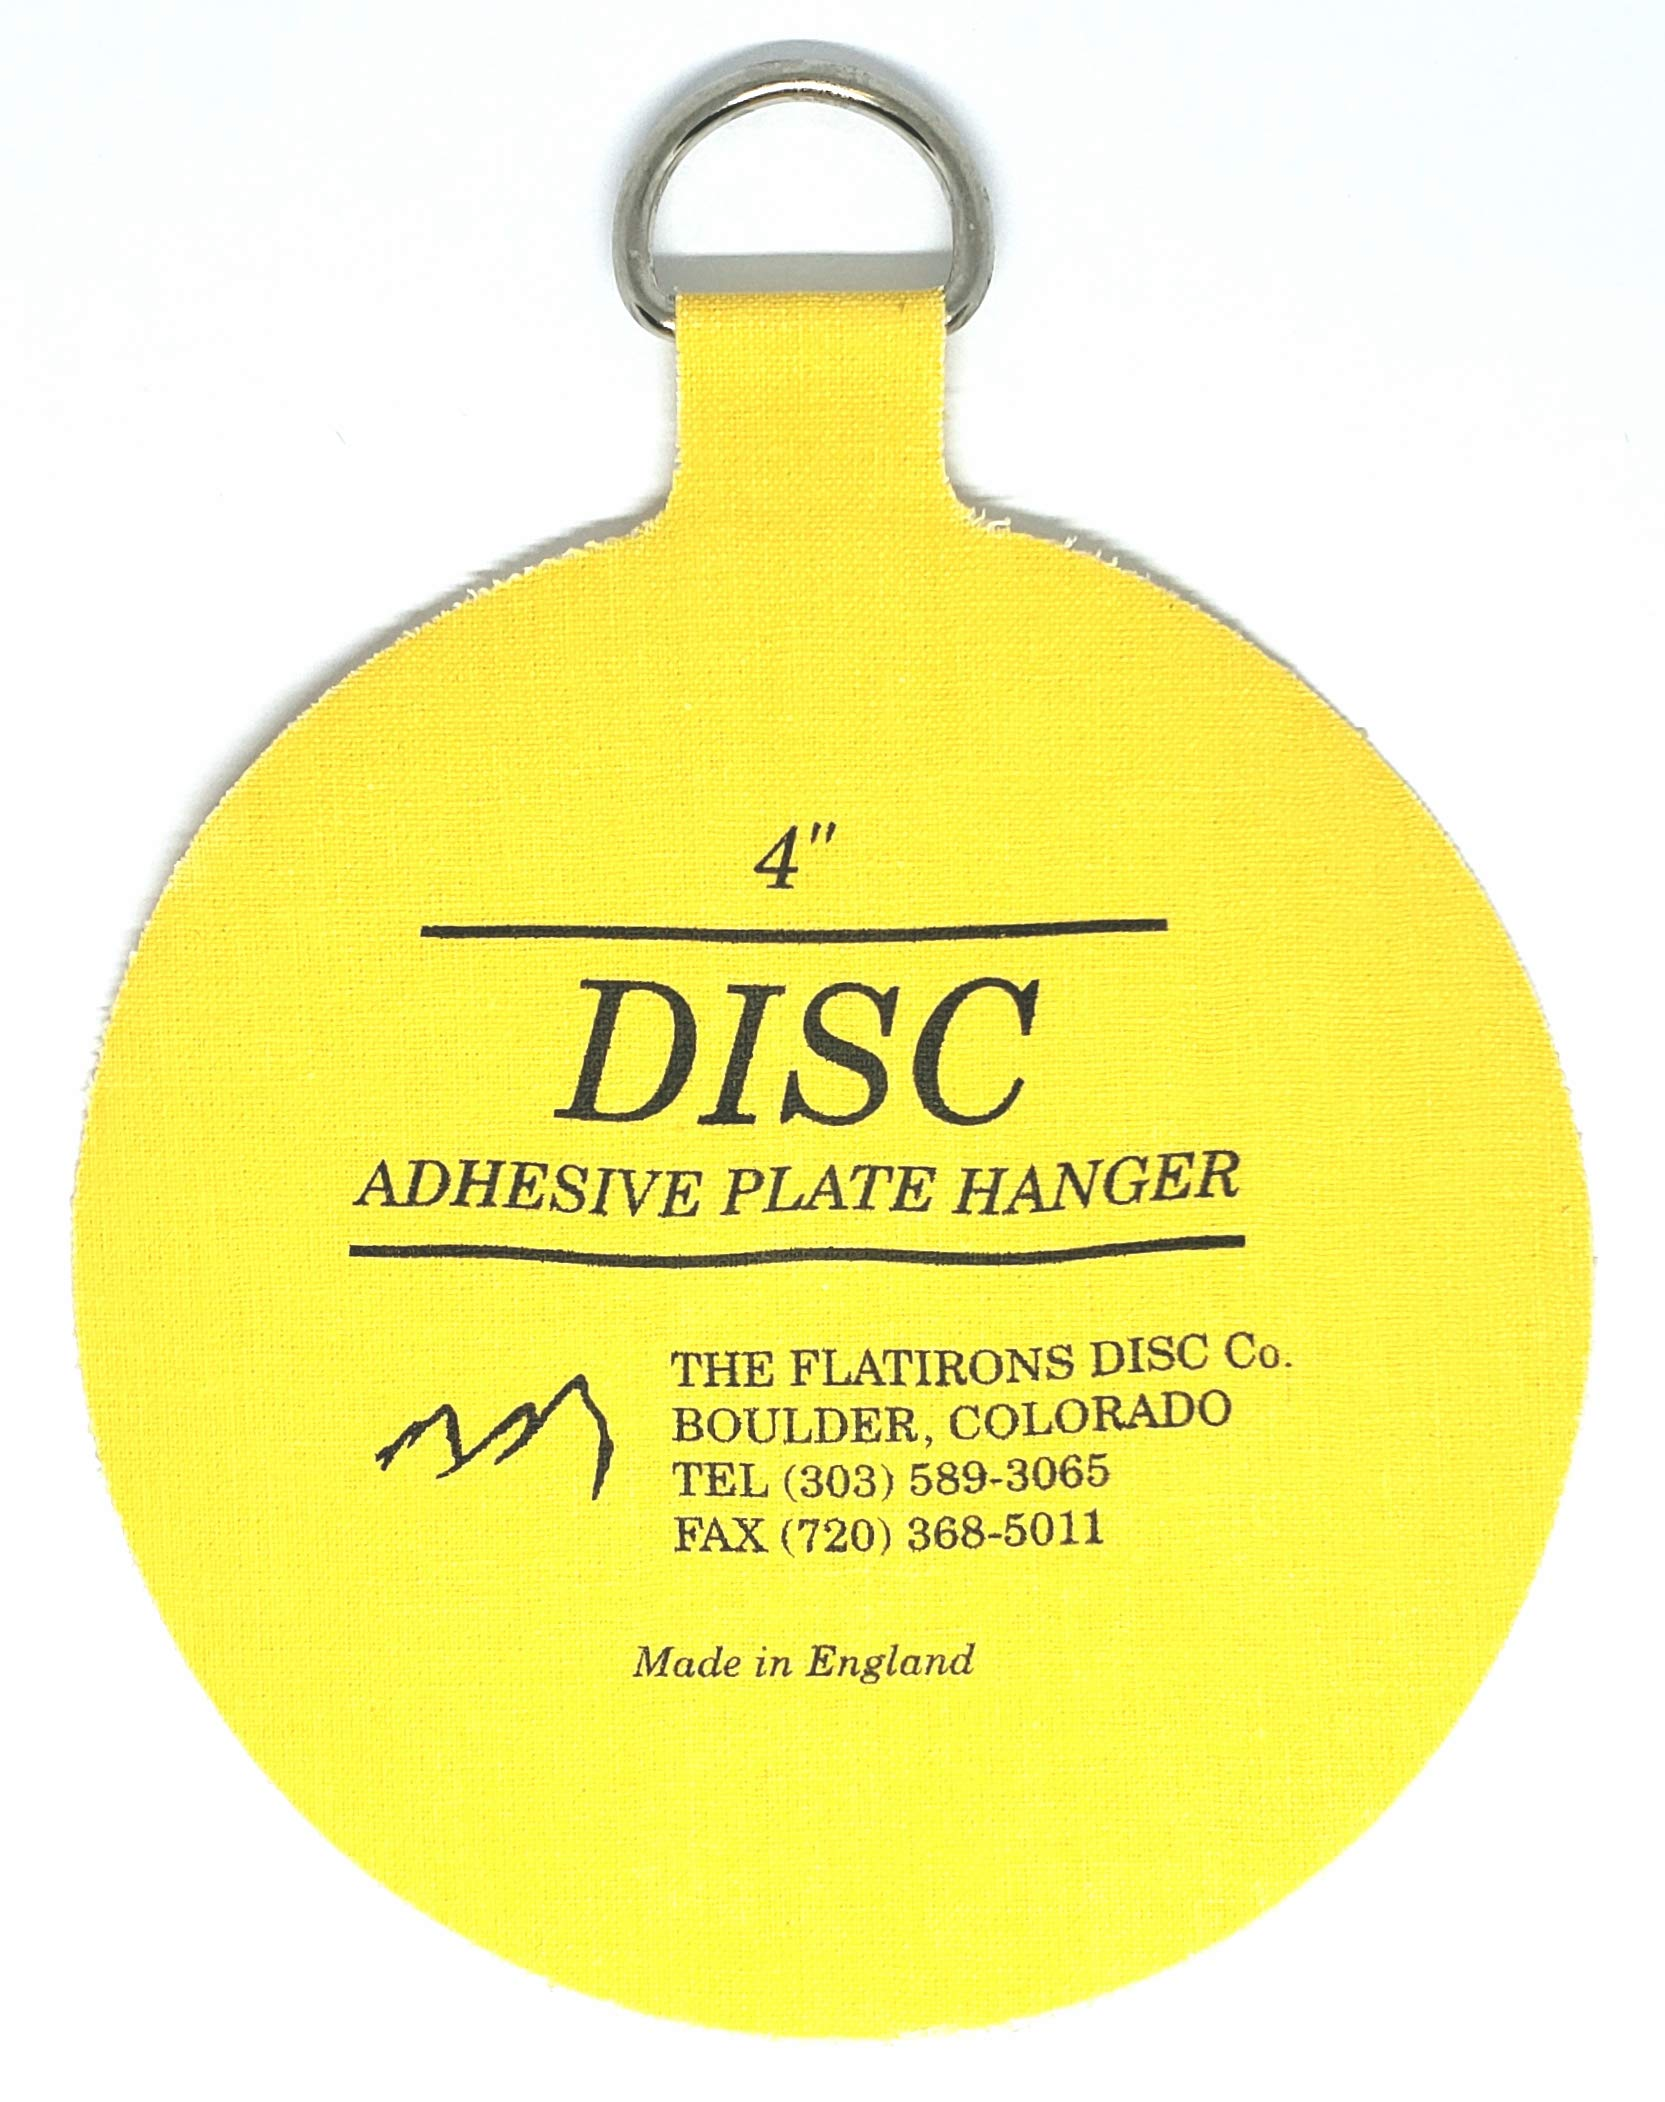 Flatirons Disc - Invisible English Disc - Adhesive Plate Hanger, 4 inch - (10 Pack) by The Flatirons Disc Co